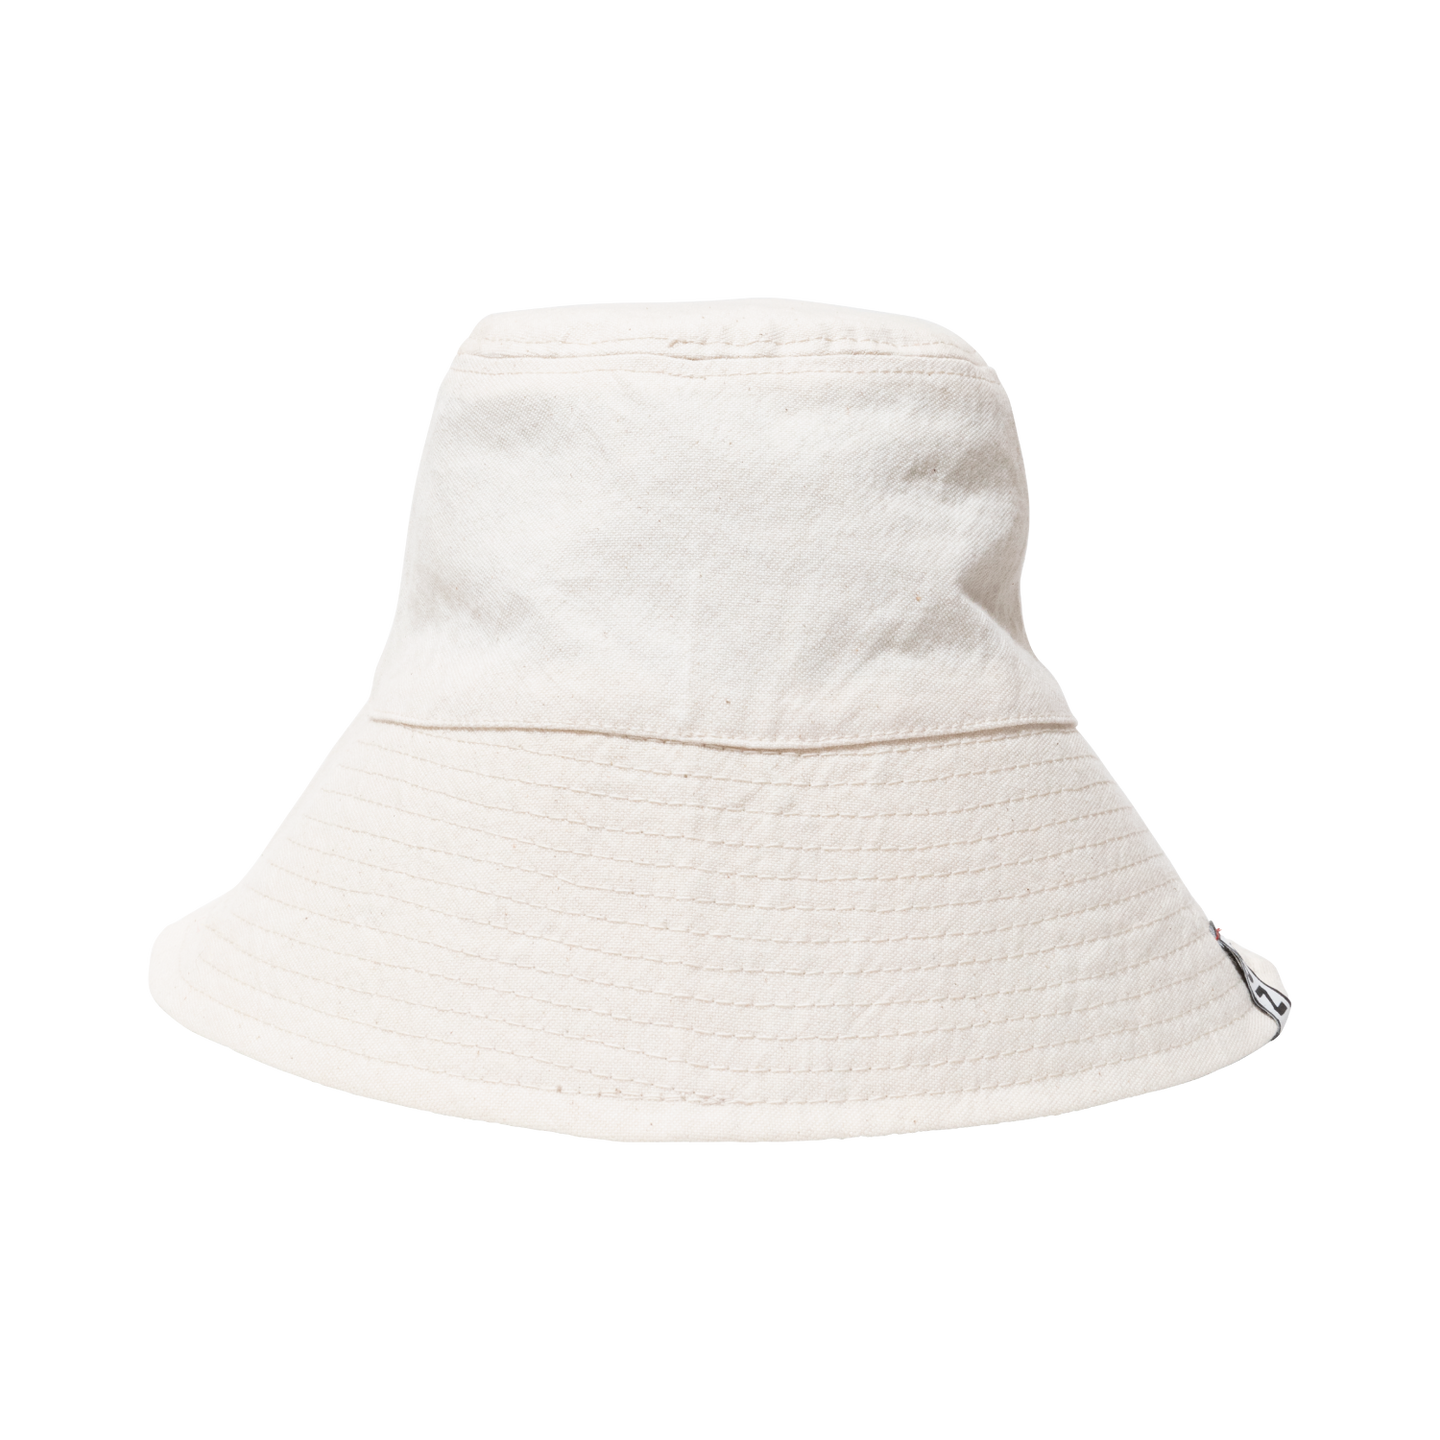 ON AIR/DURABLE Bucket Hat (White/Black)